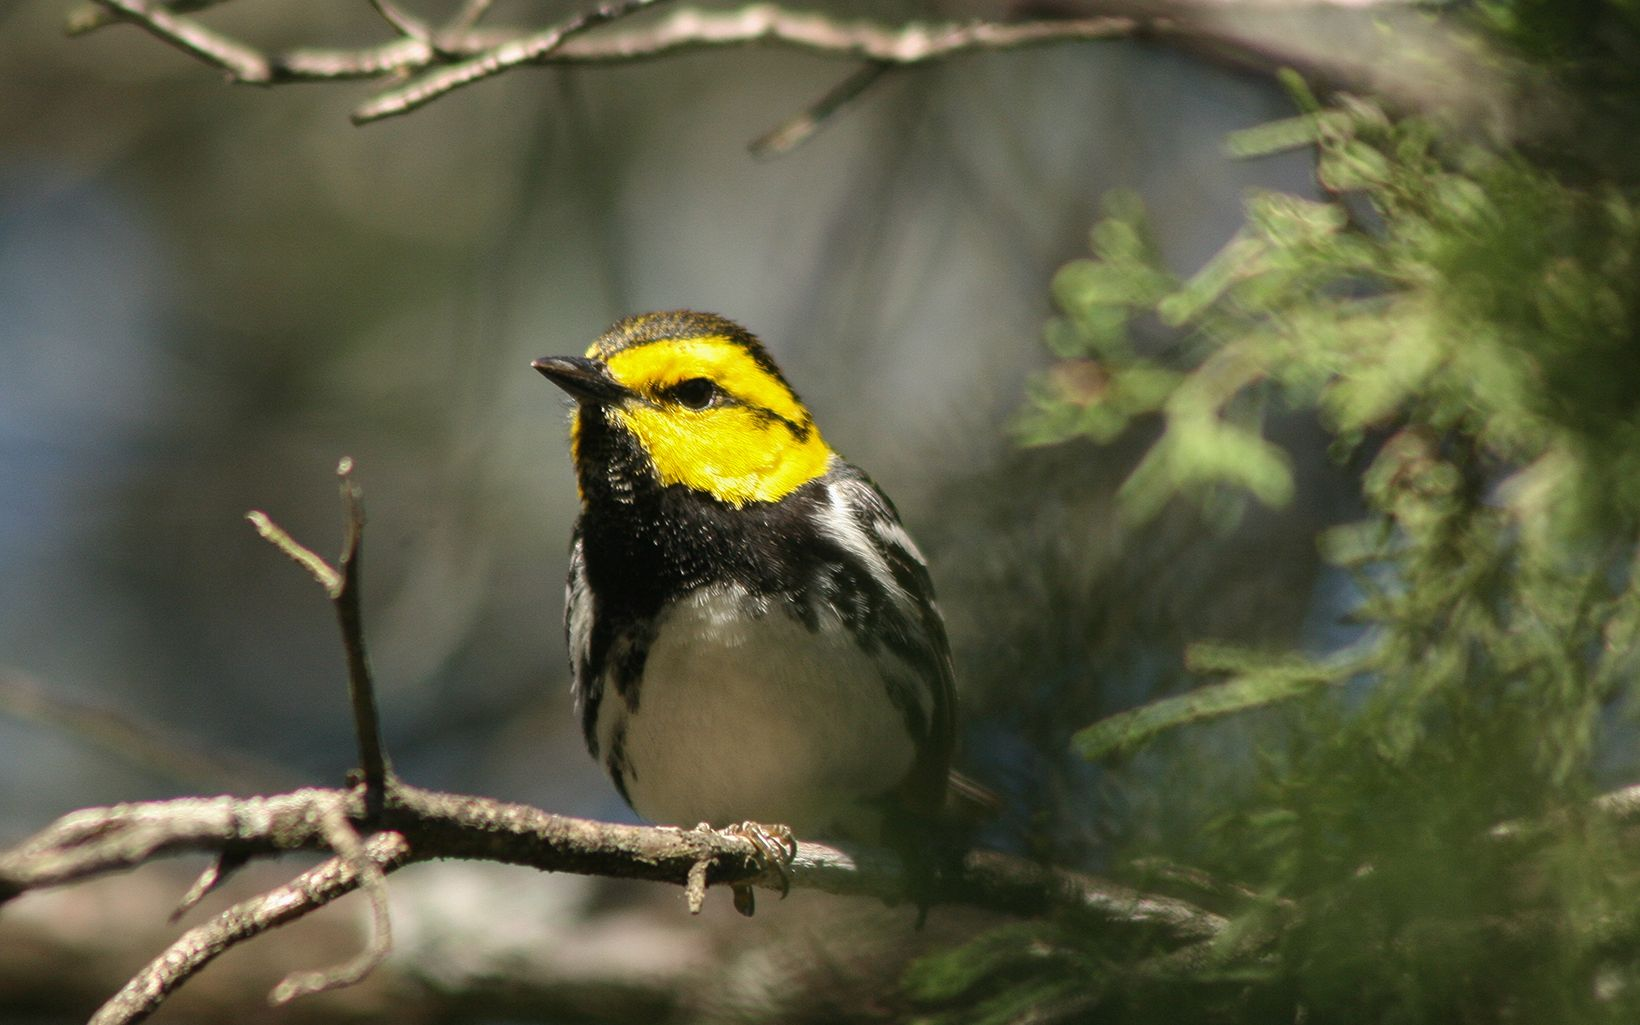 A golden-cheeked warbler, a federally endangered songbird.